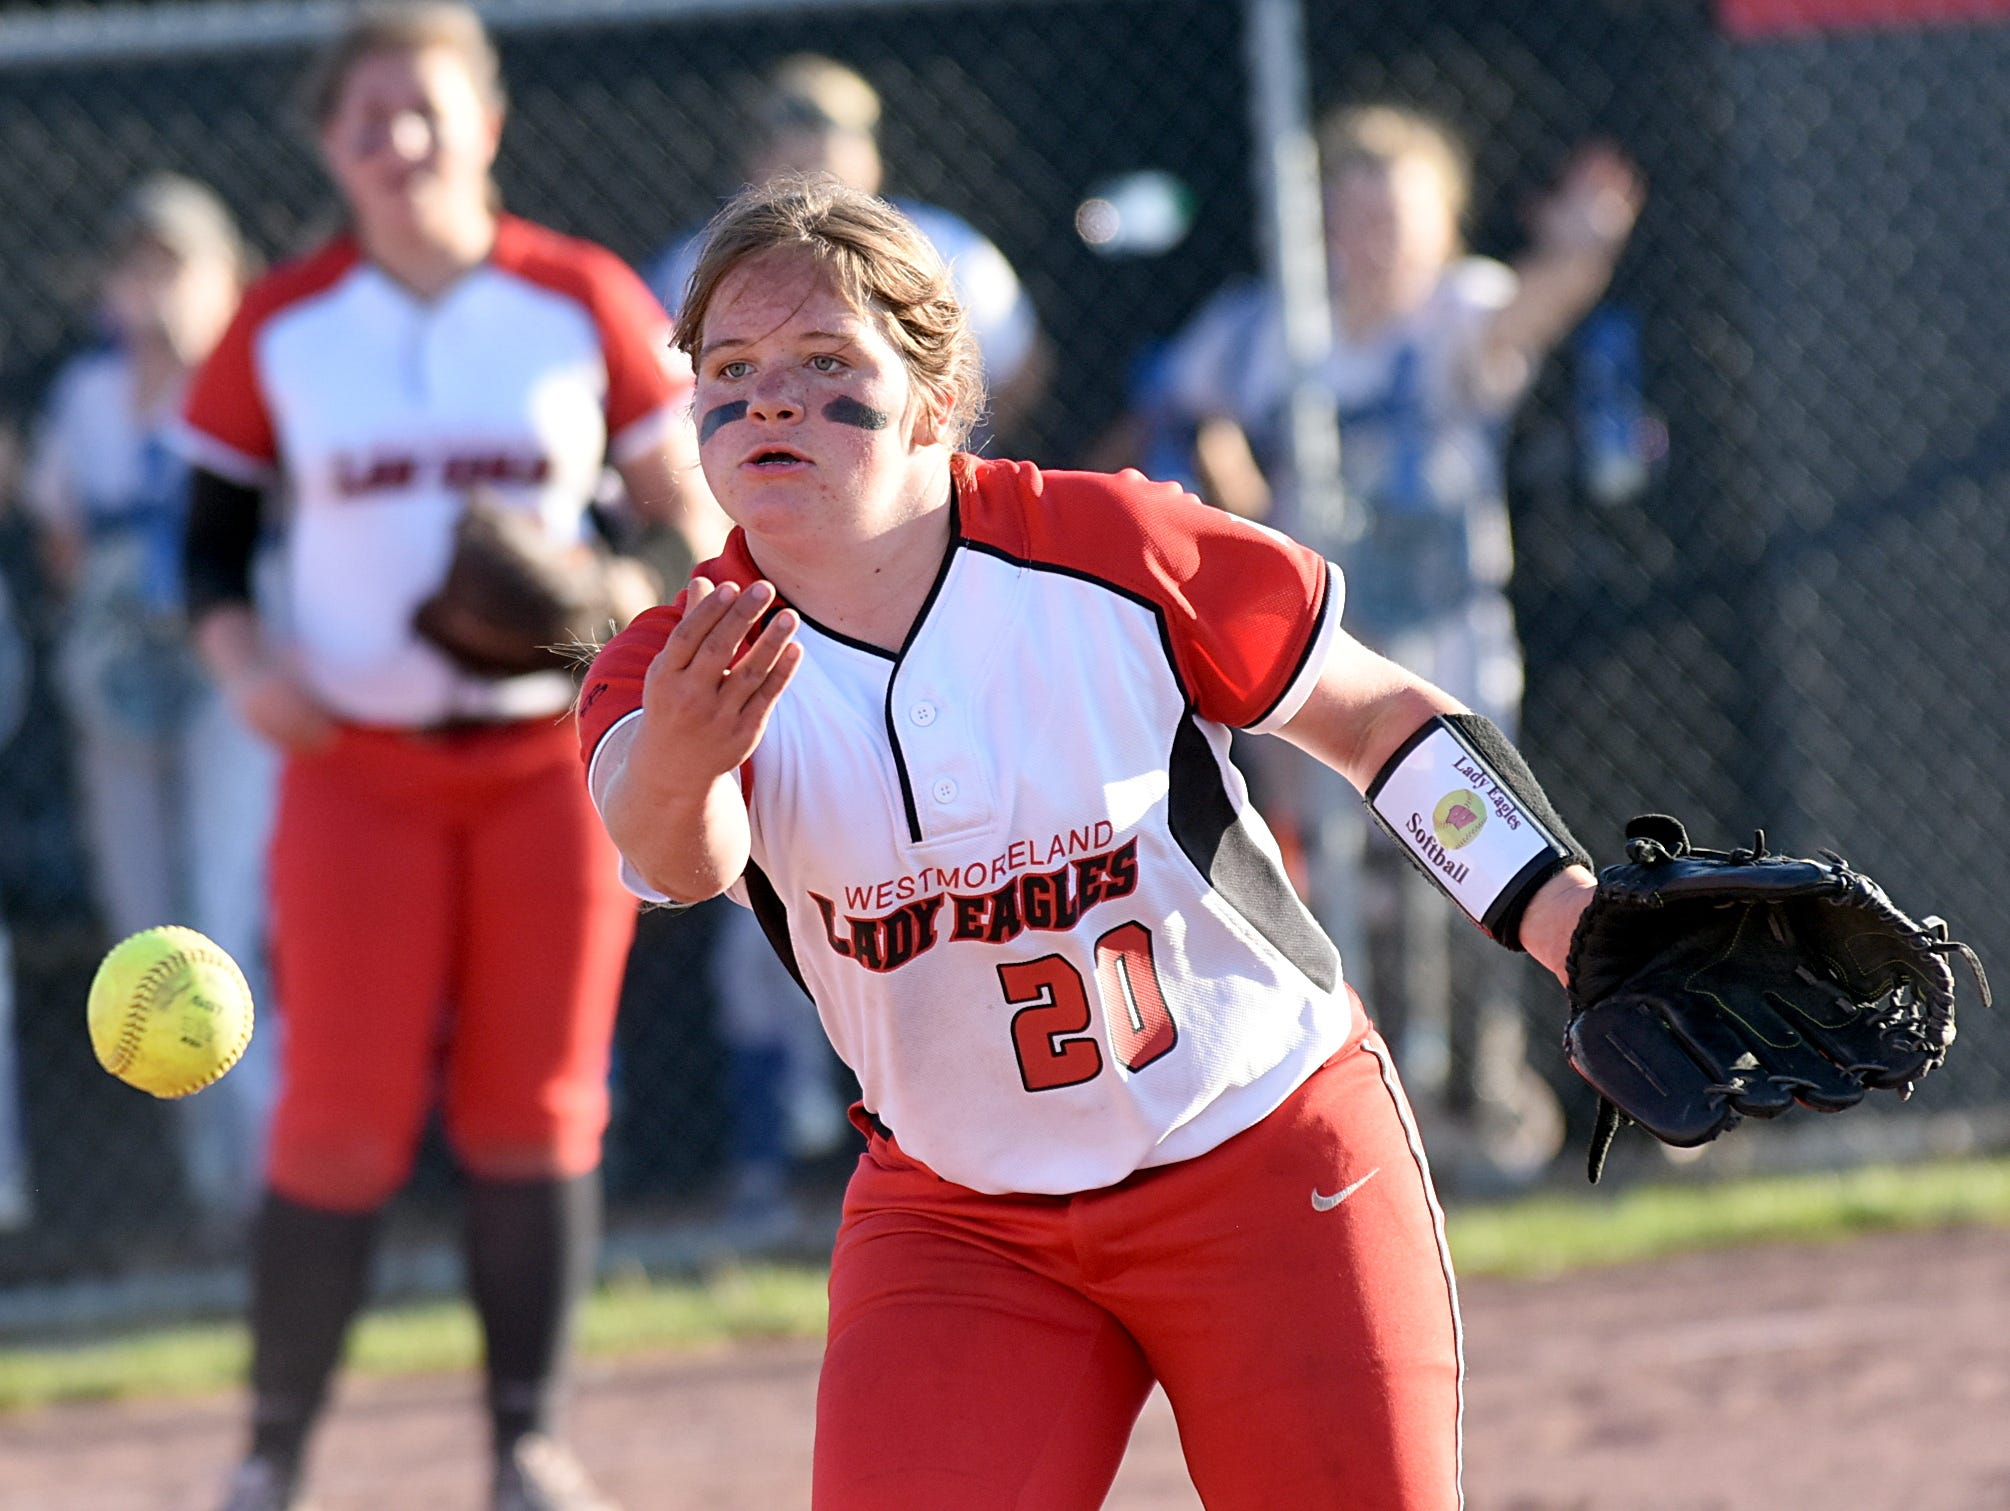 Westmoreland High senior pitcher Tiffany Wheeley flips to first base for a fifth-inning putout.